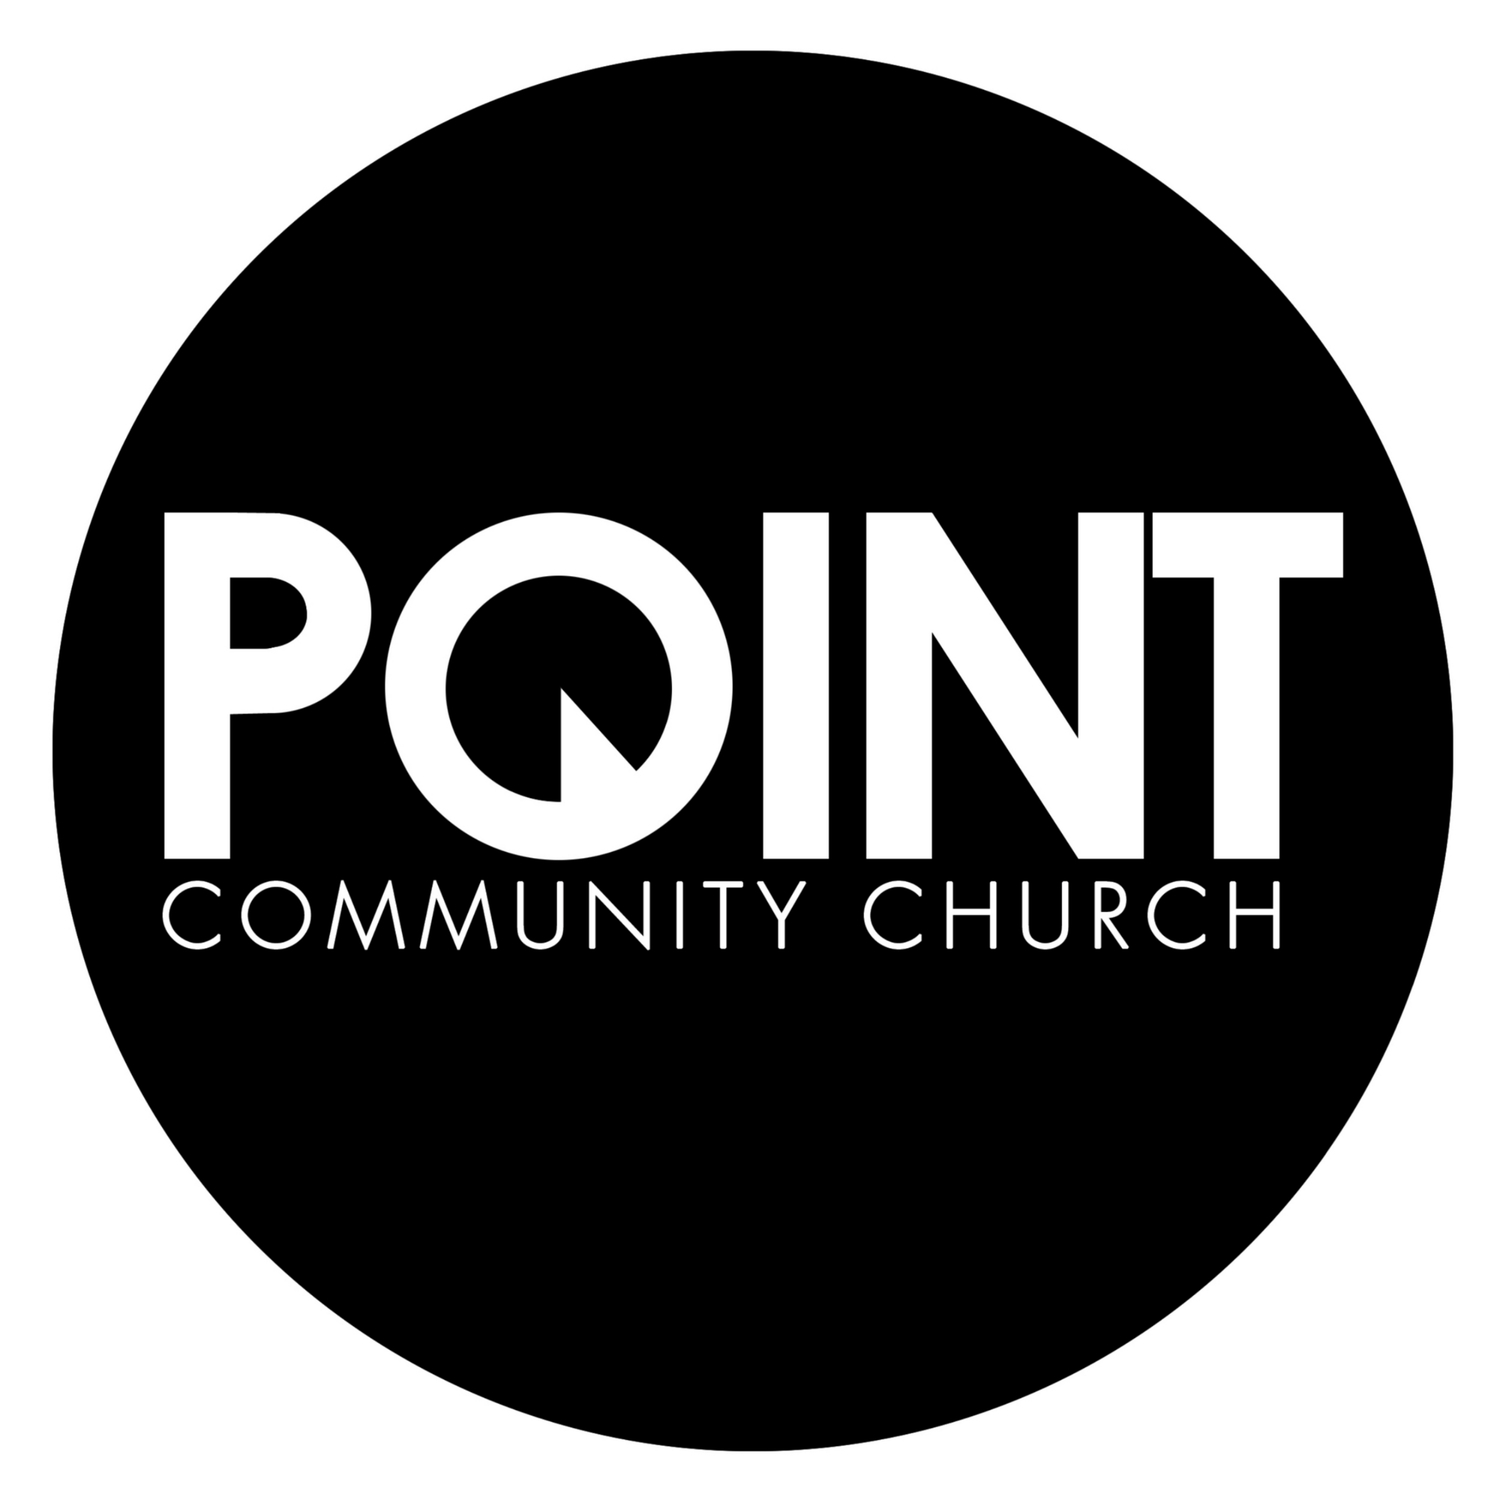 Point Community Church